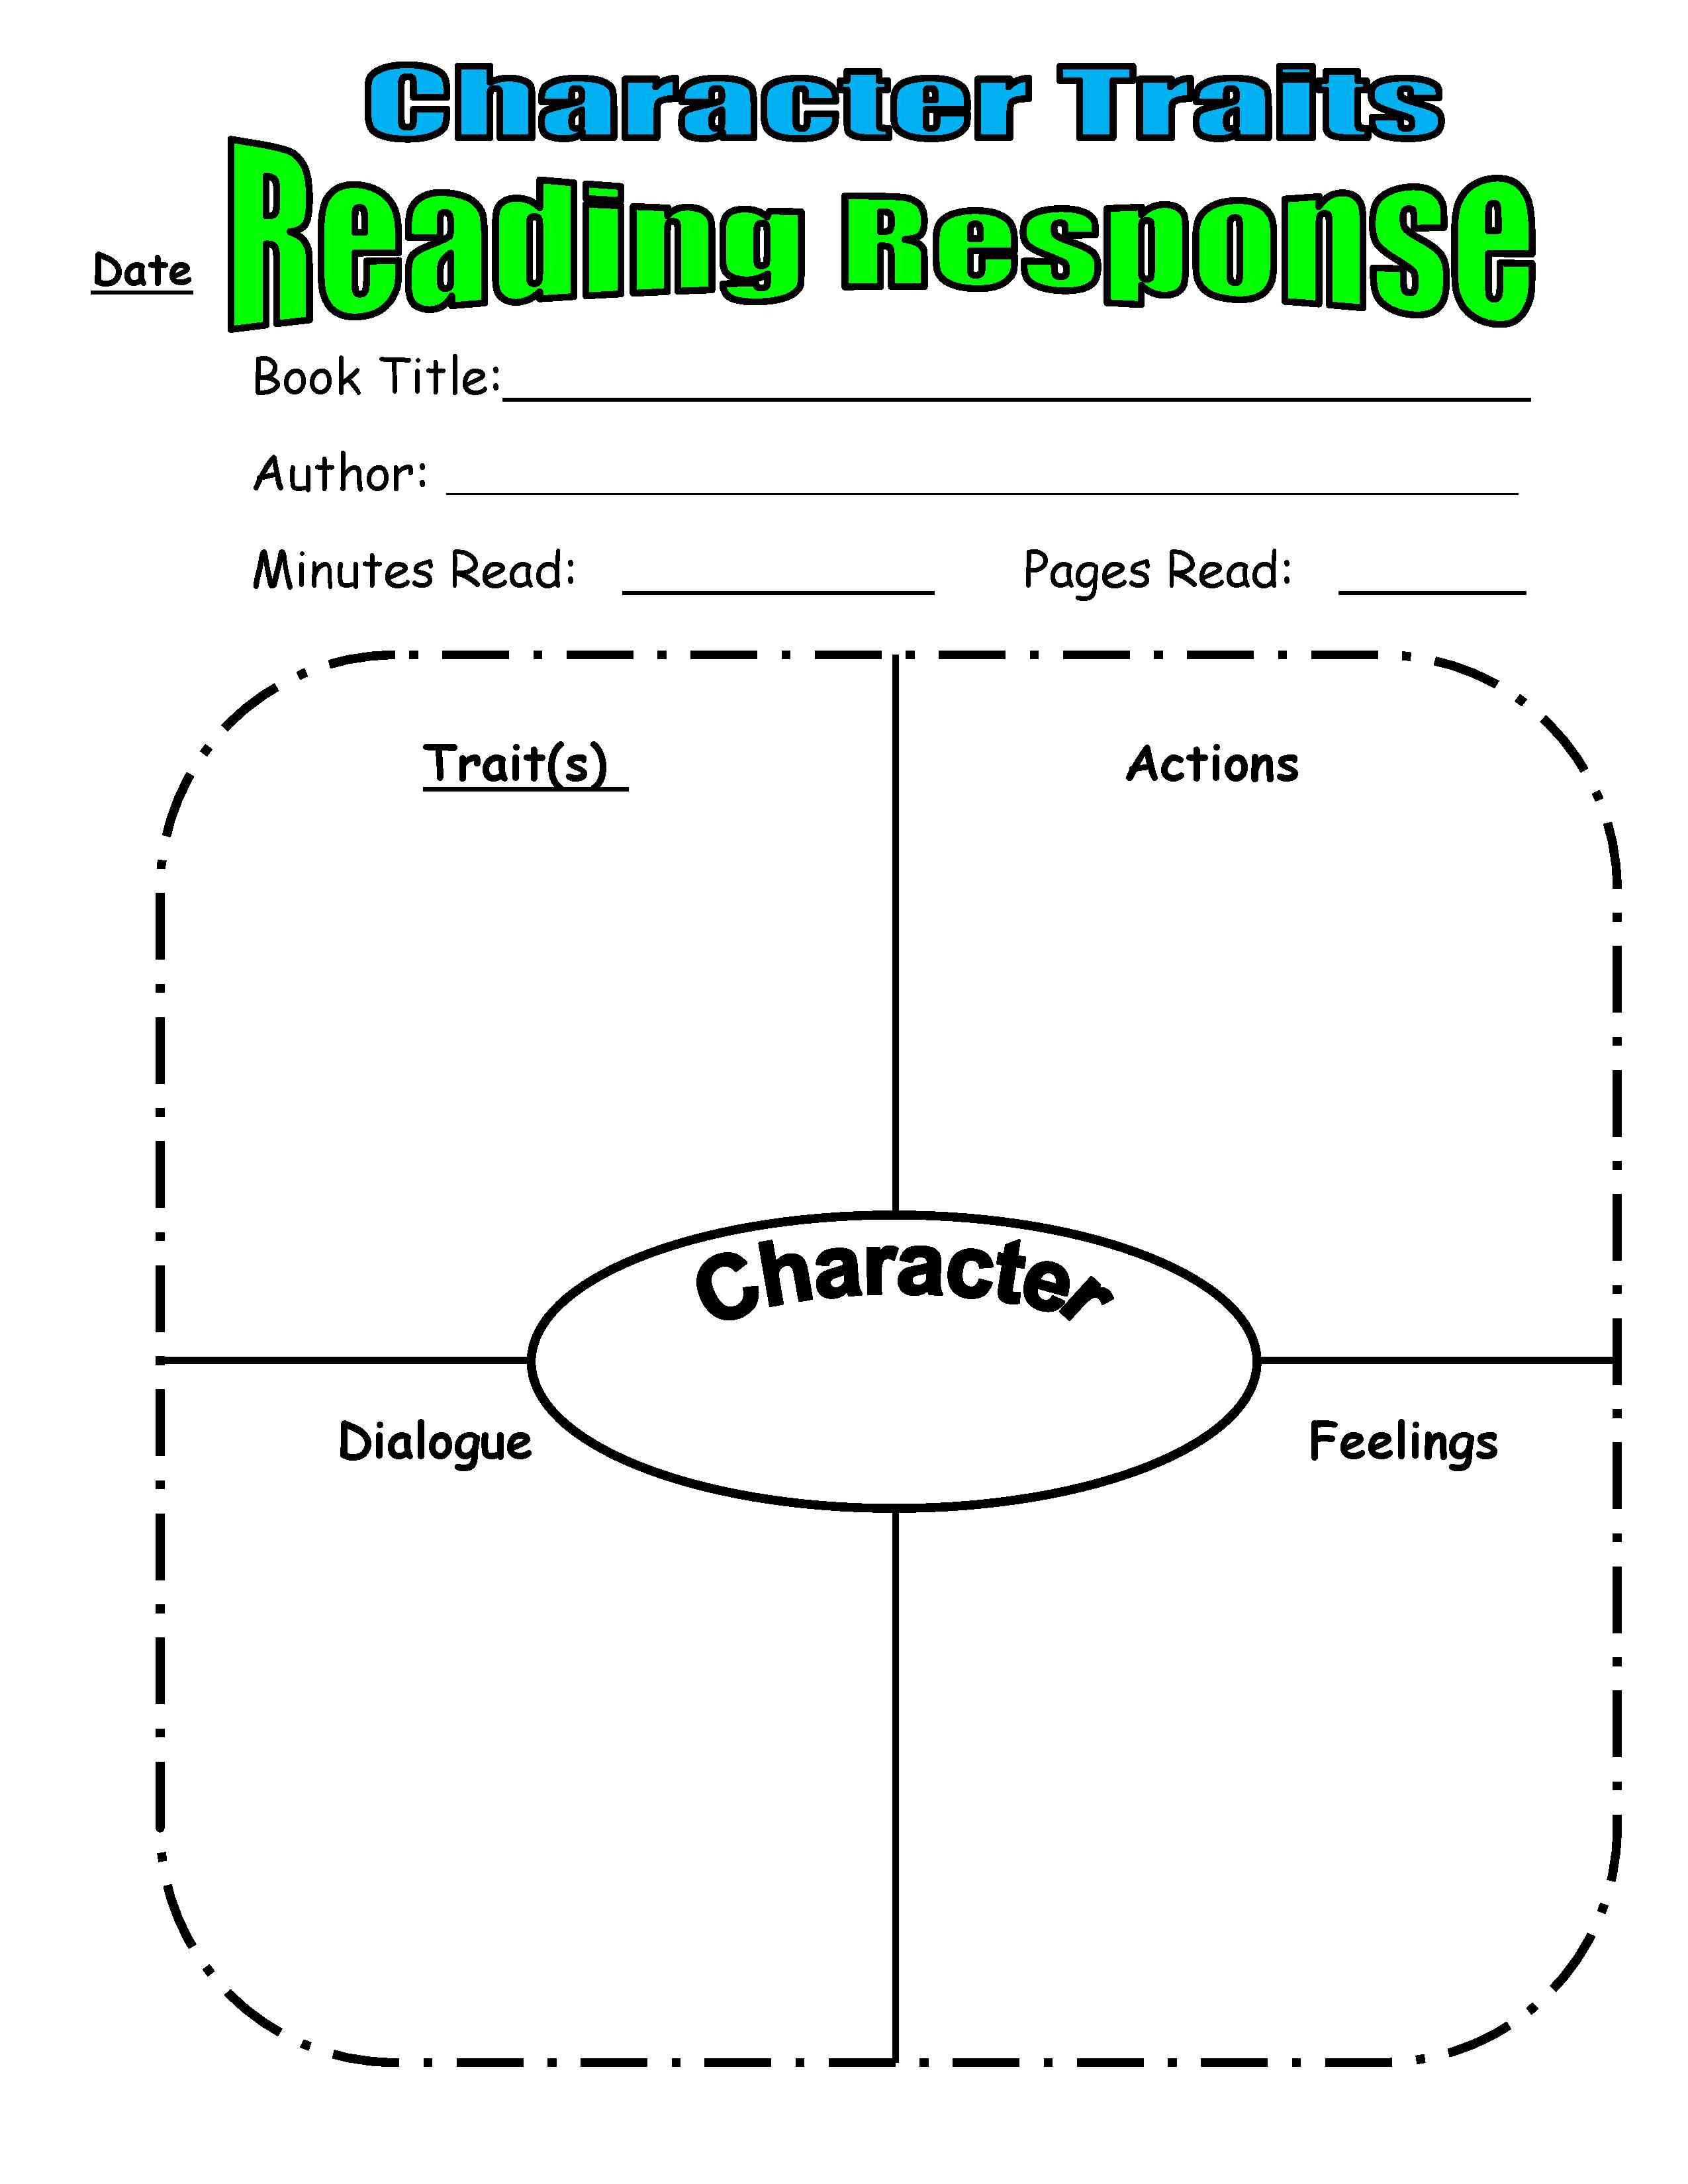 Teaching Character Traits In Reader's Workshop   Scholastic - Free Printable Character Map